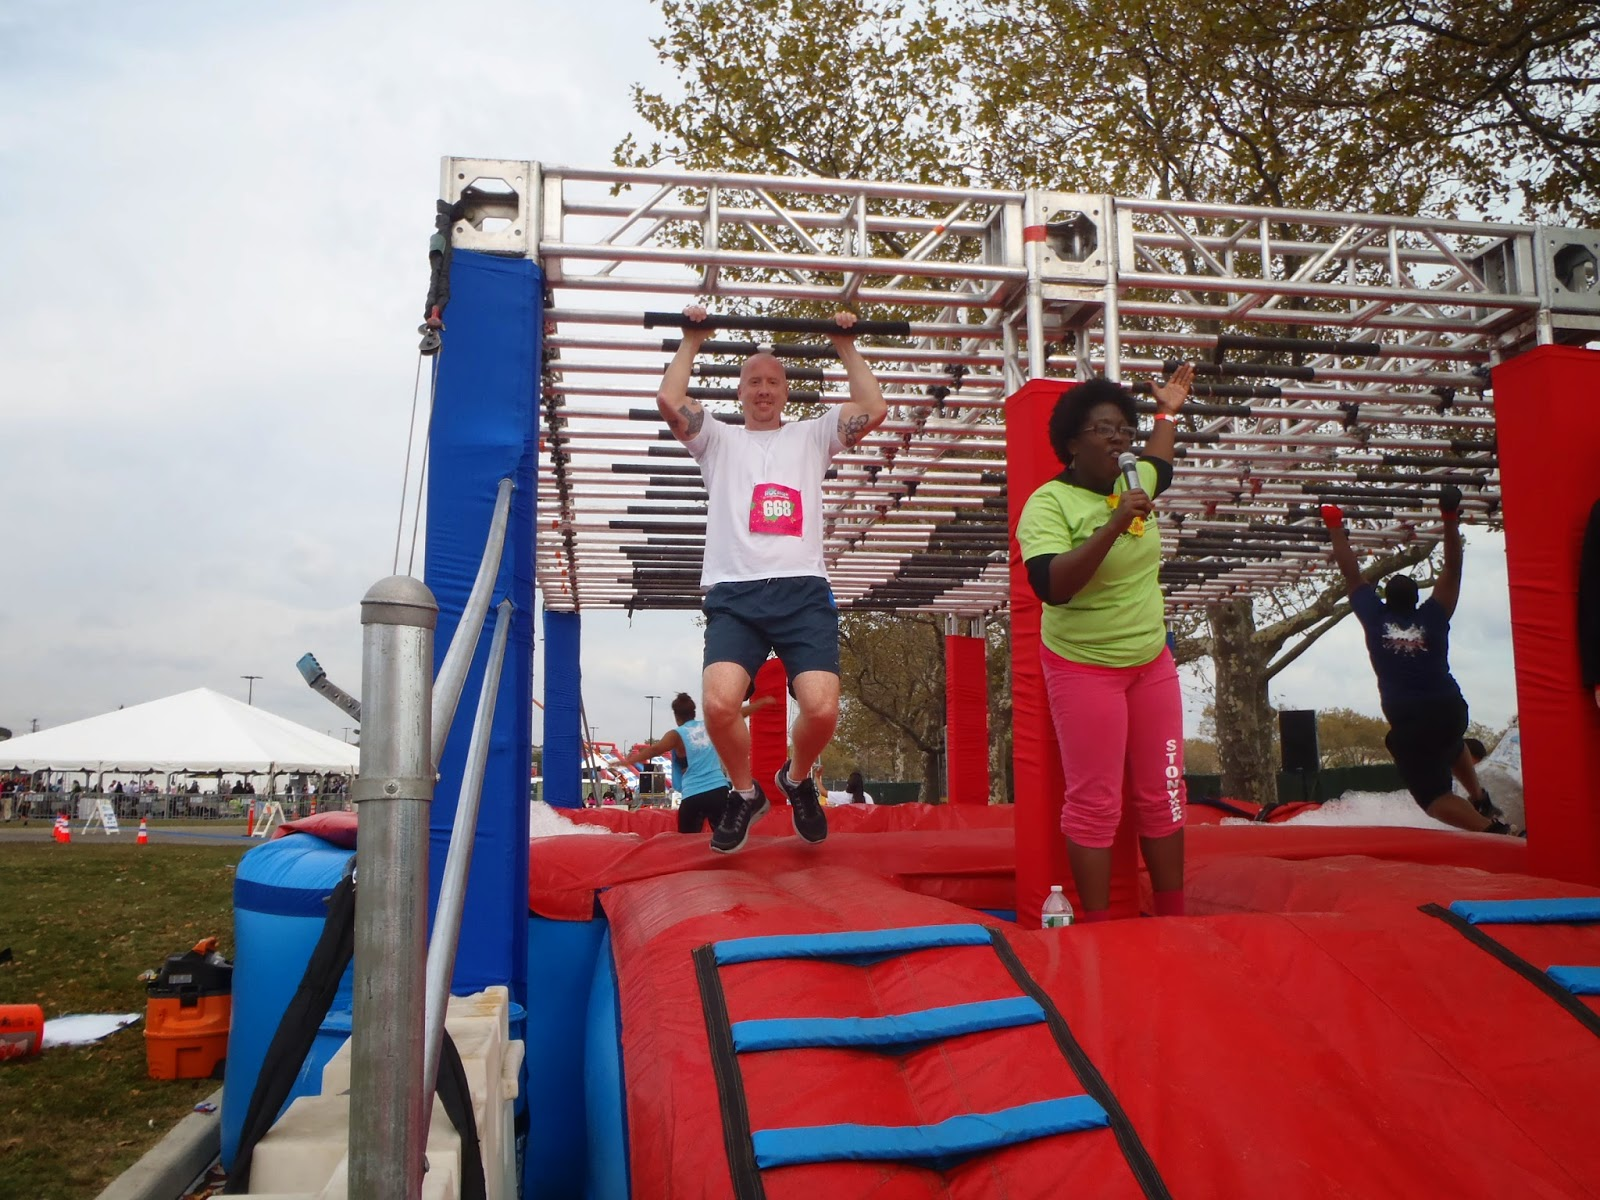 Ridiculous obstacle race monkey bars